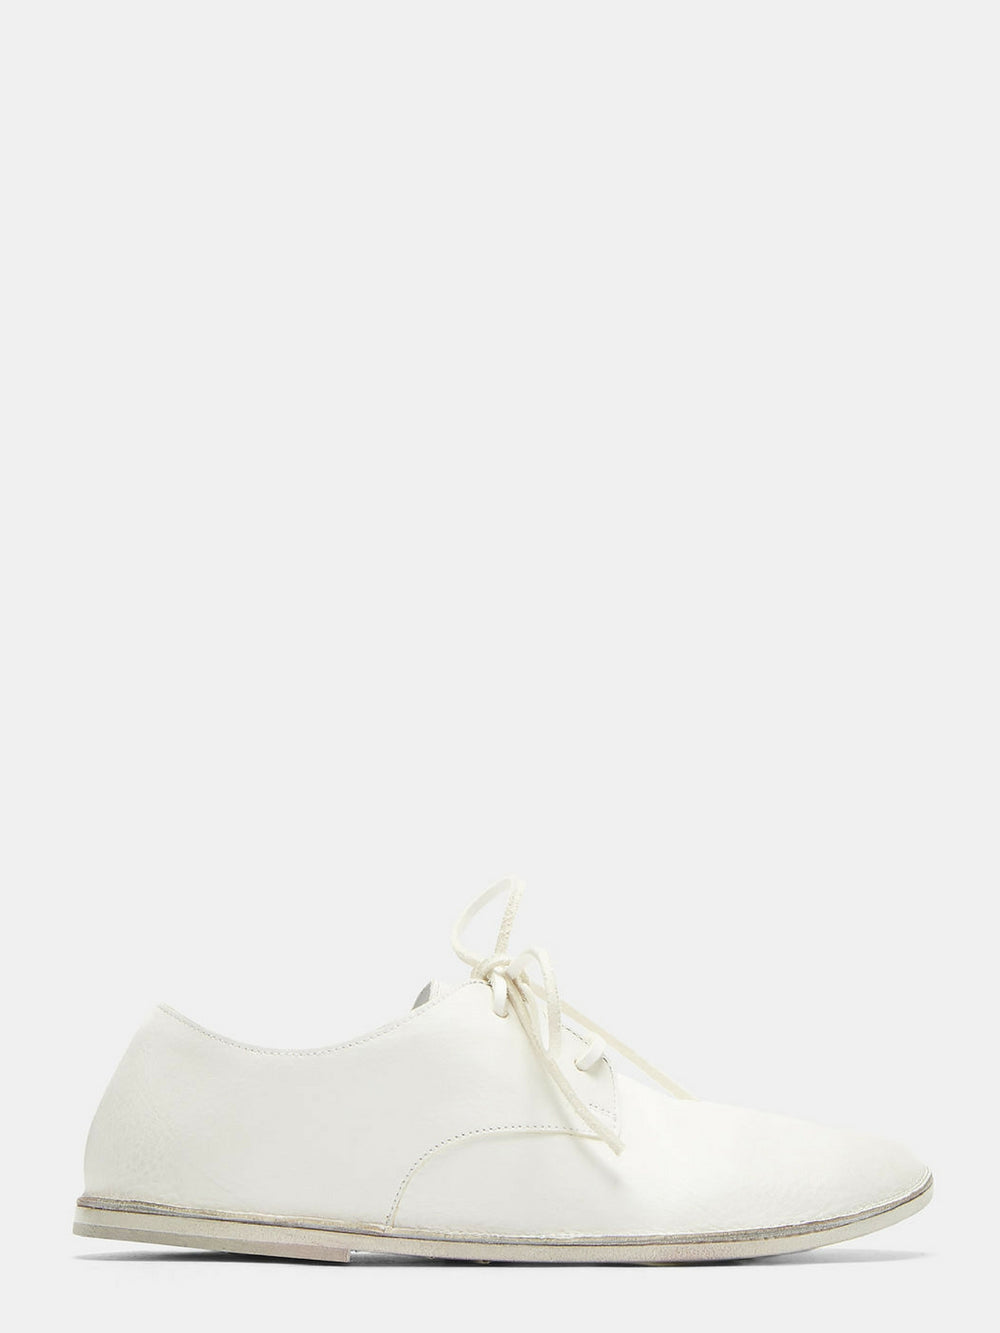 marsell-strasacco-volonata-lace-up-shoes-white